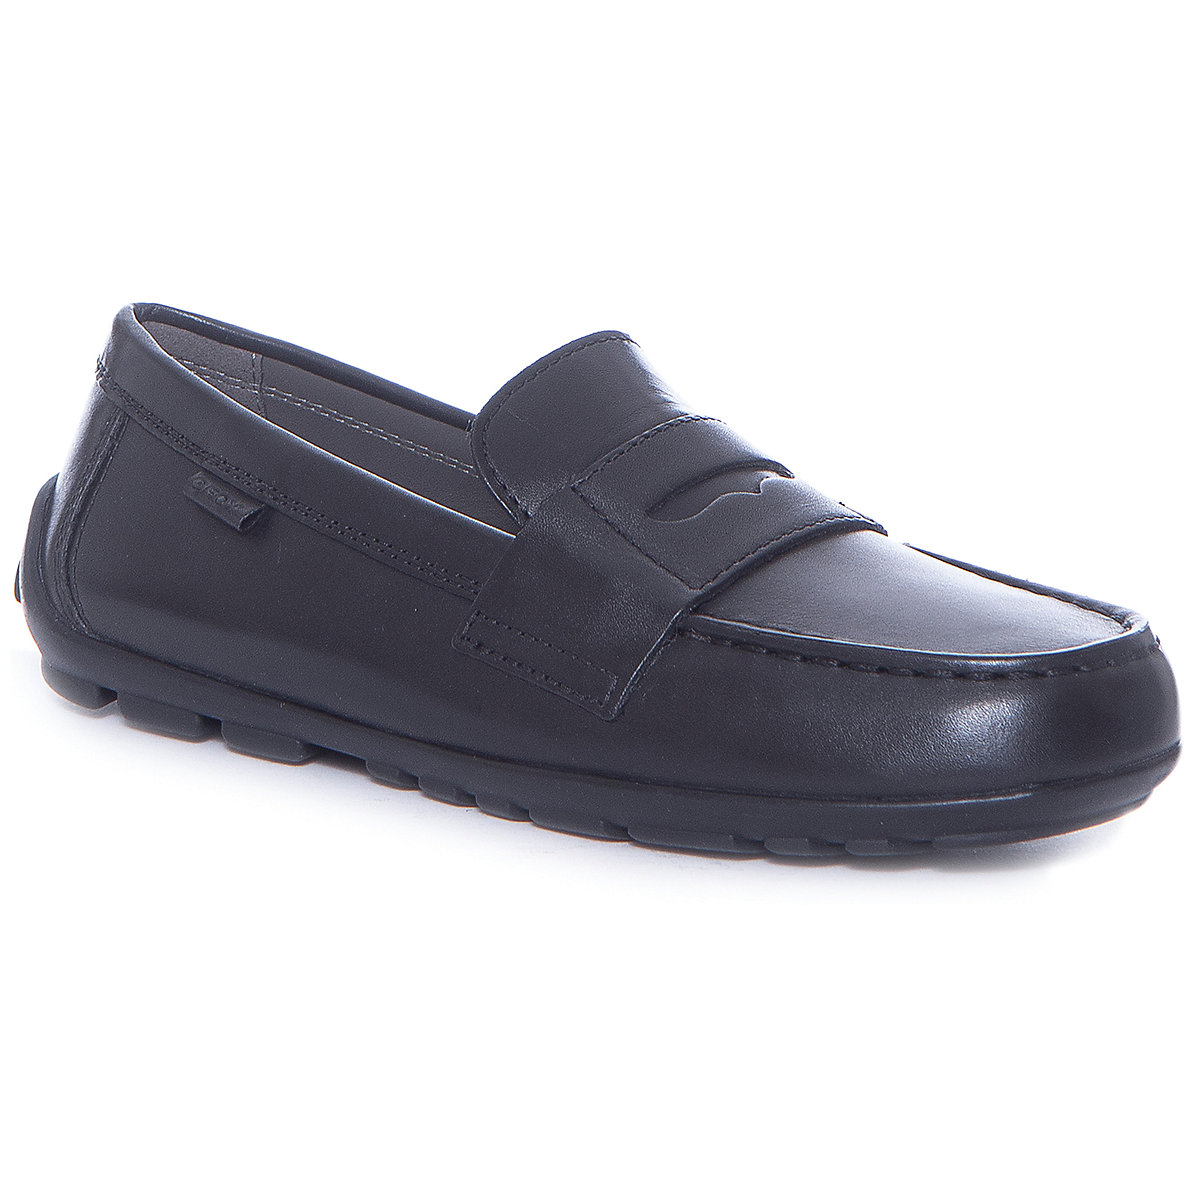 GEOX Children Casual Shoes 8786617 spring/summer Boys Leather for boy baby school shoes casual middle vamp men leather shoes